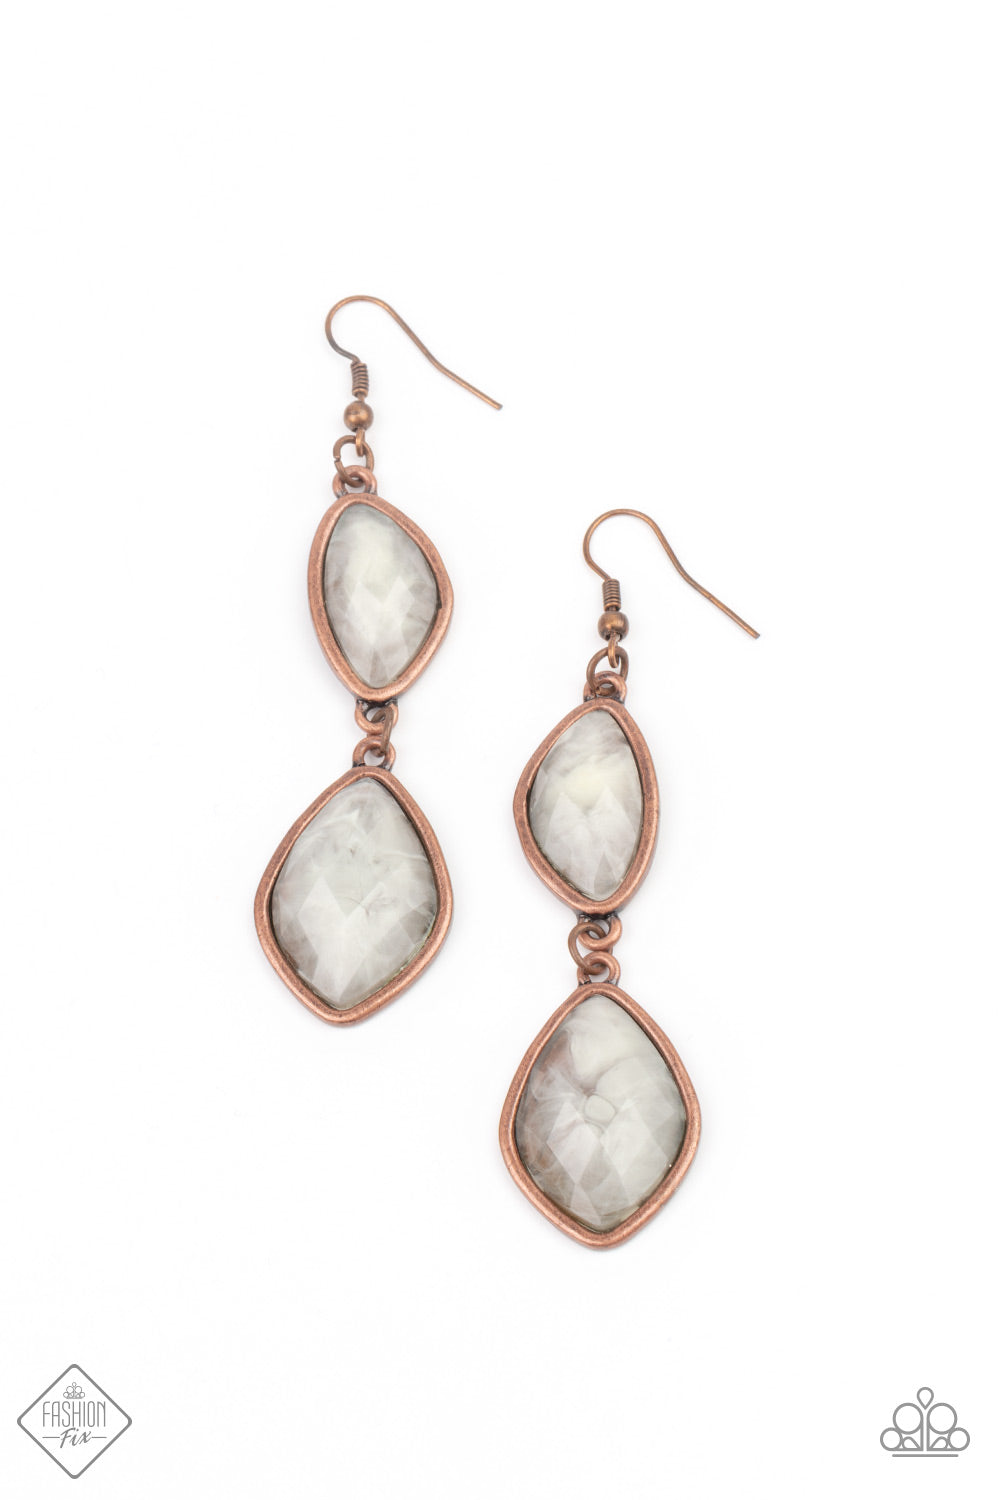 five-dollar-jewelry-the-oracle-has-spoken-copper-earrings-paparazzi-accessories